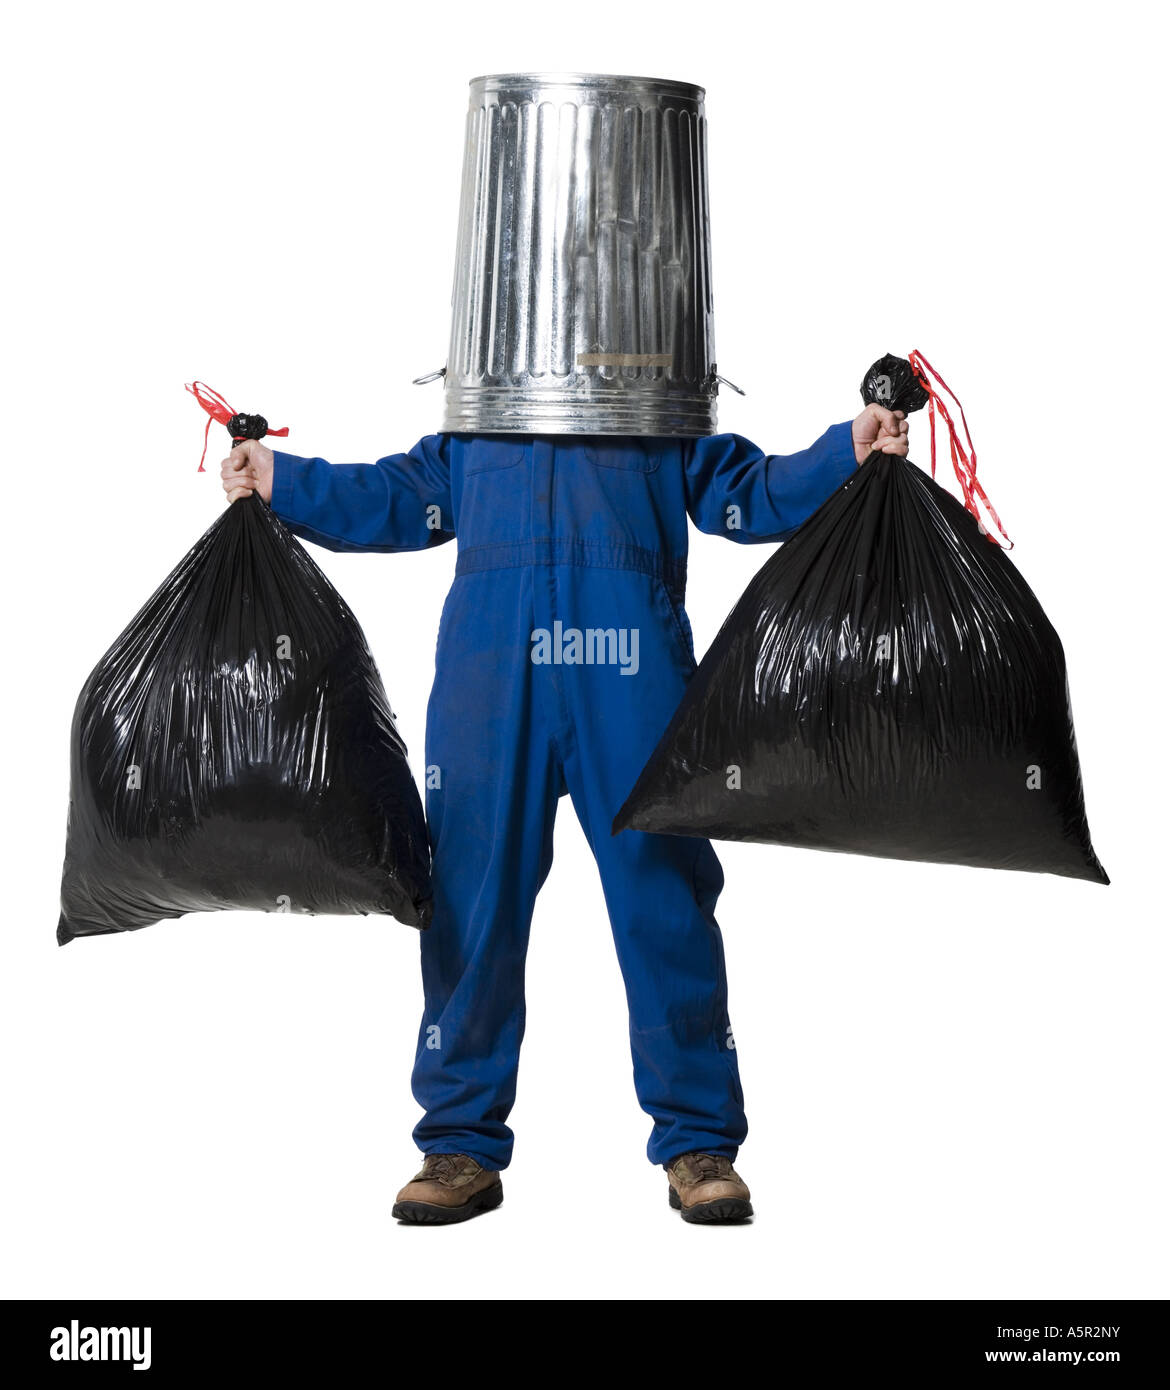 Garbage Man With Trash Can On Head Stock Photo Royalty